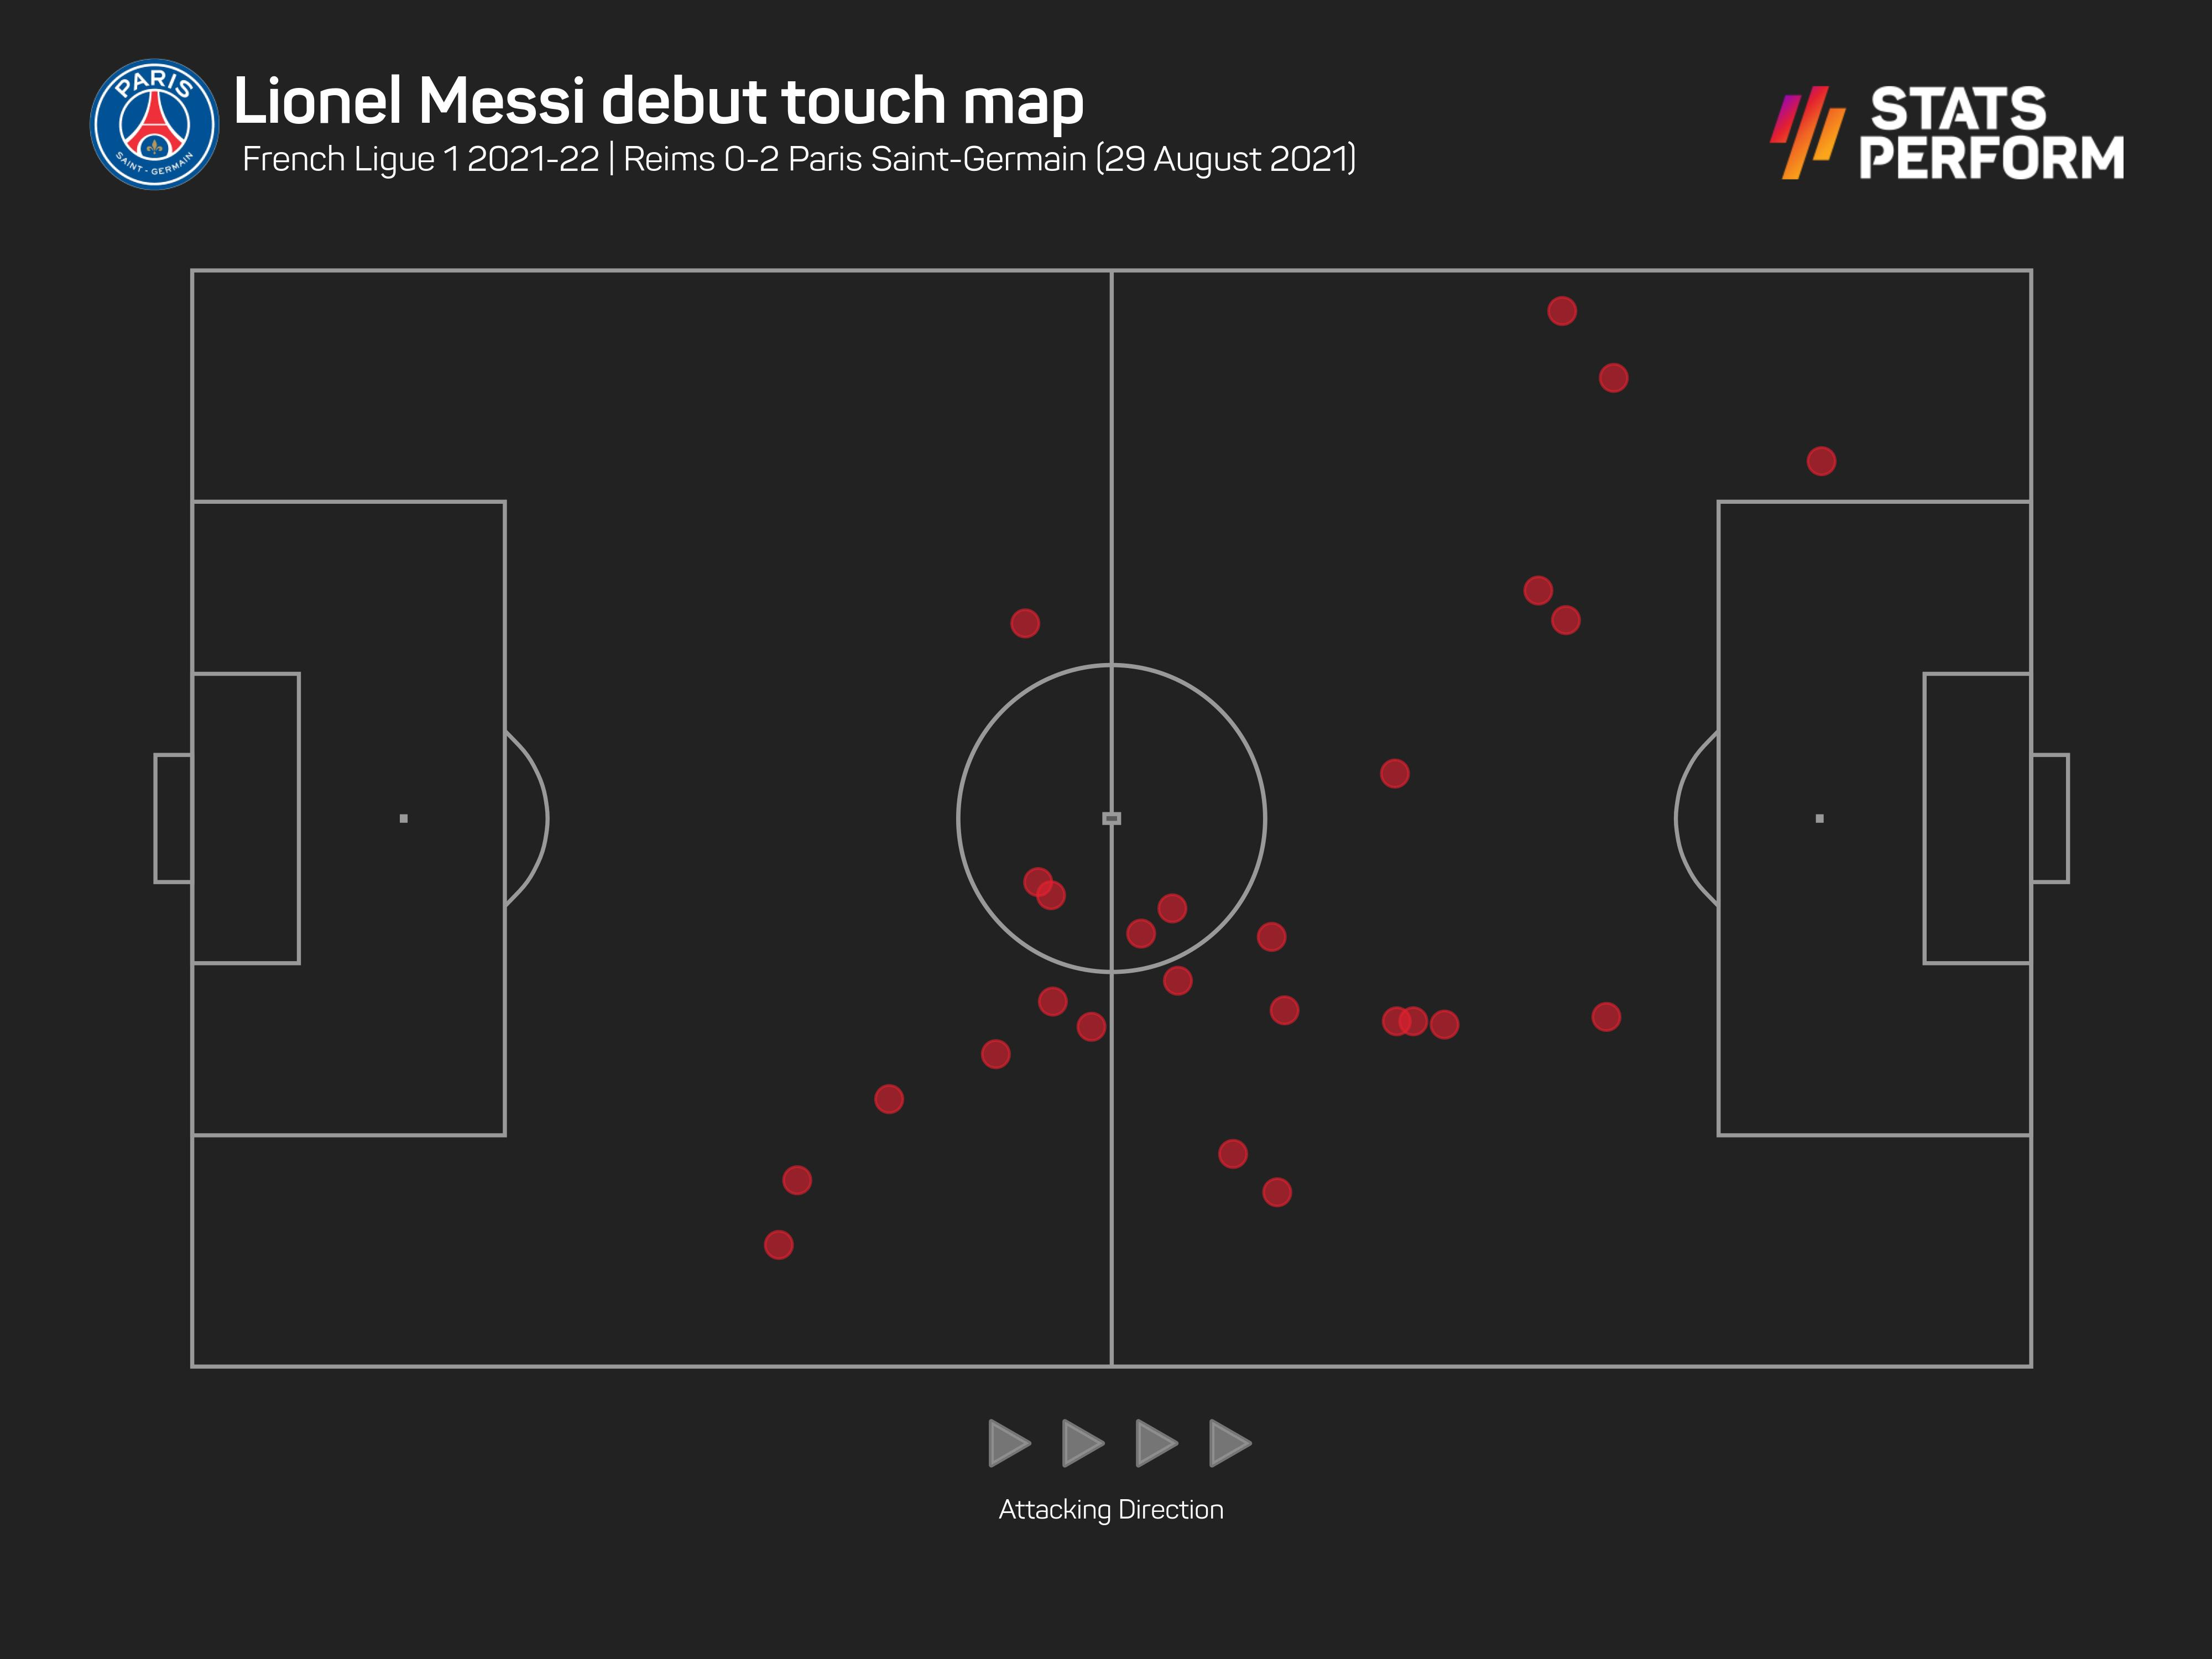 Lionel Messi touch map